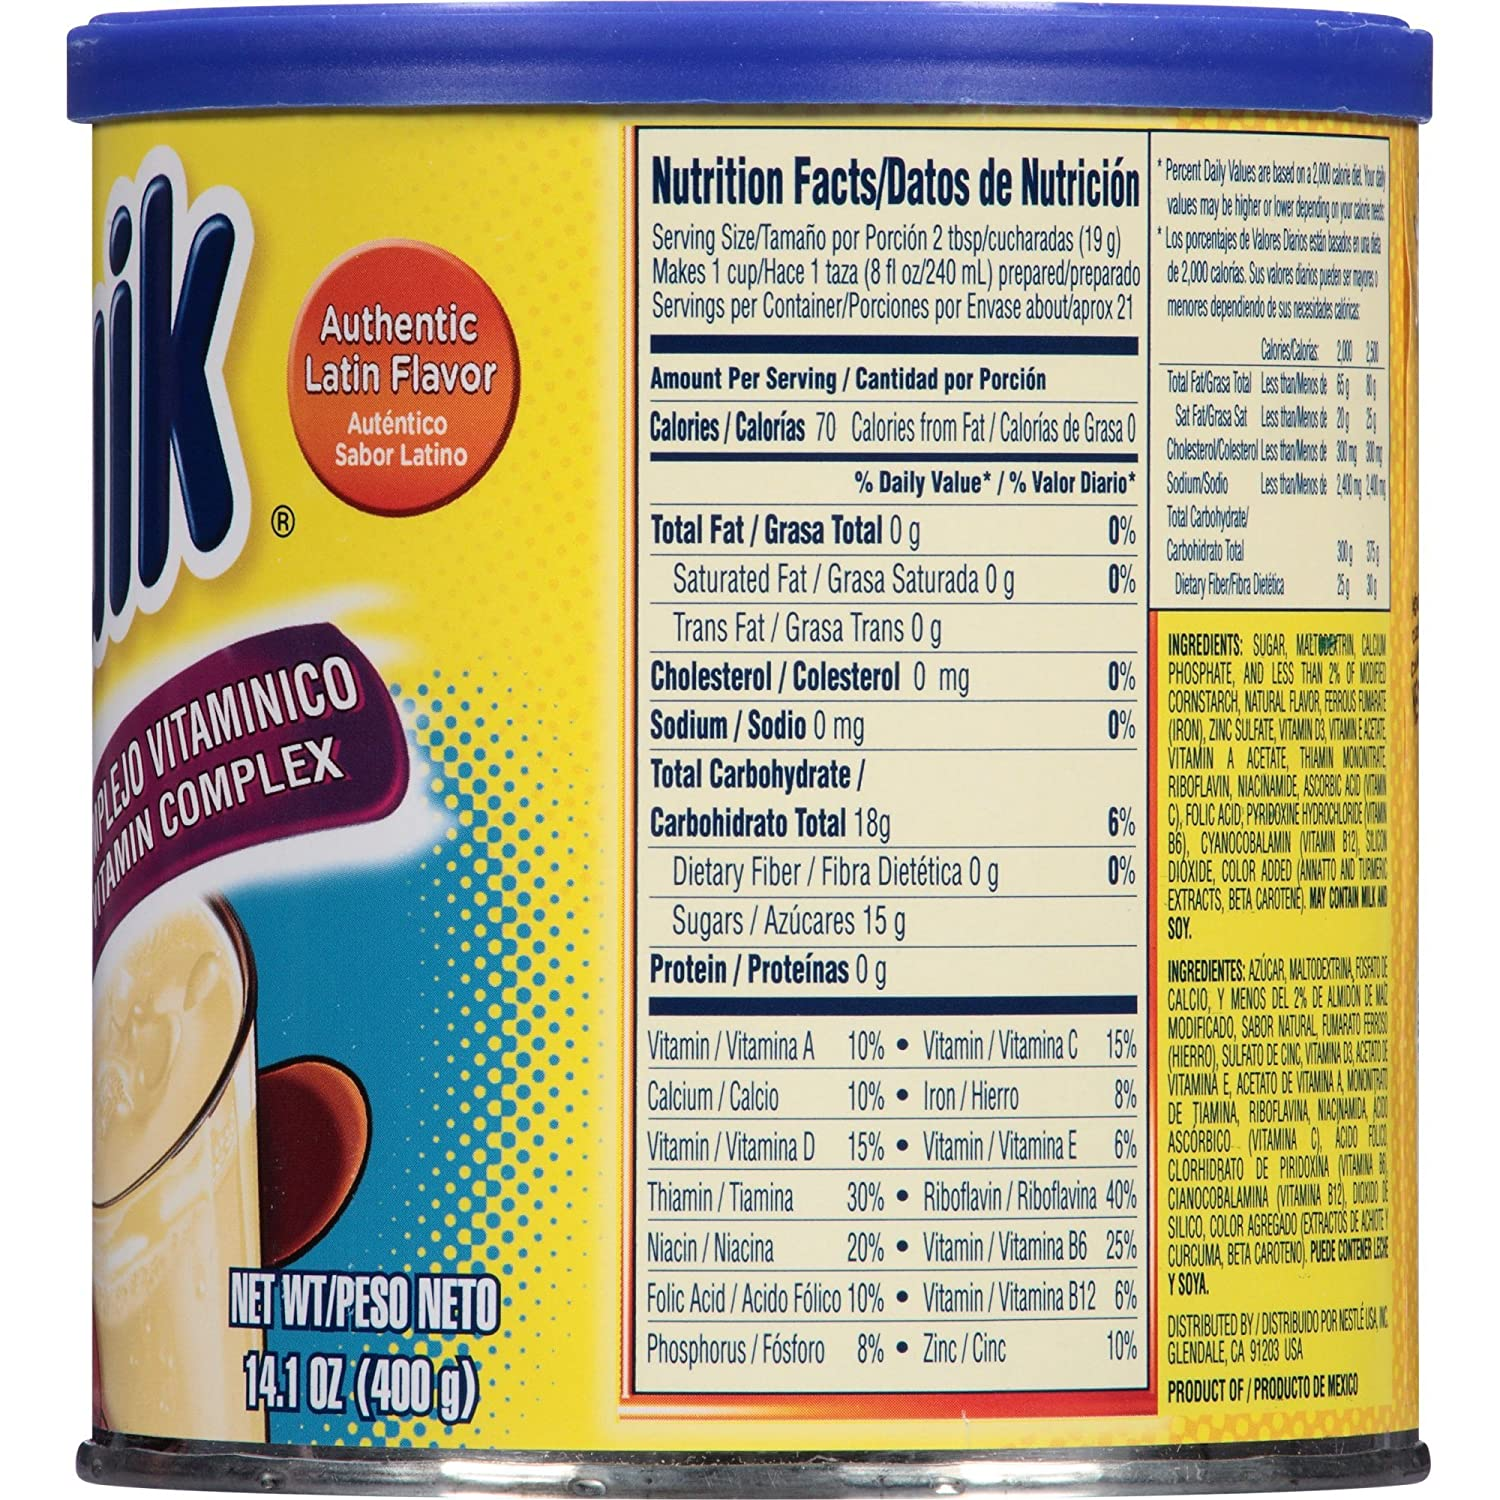 Amazon.com : Nesquik Vanilla Flavor 14.1 oz. Canister (Pack of 4) : Grocery & Gourmet Food